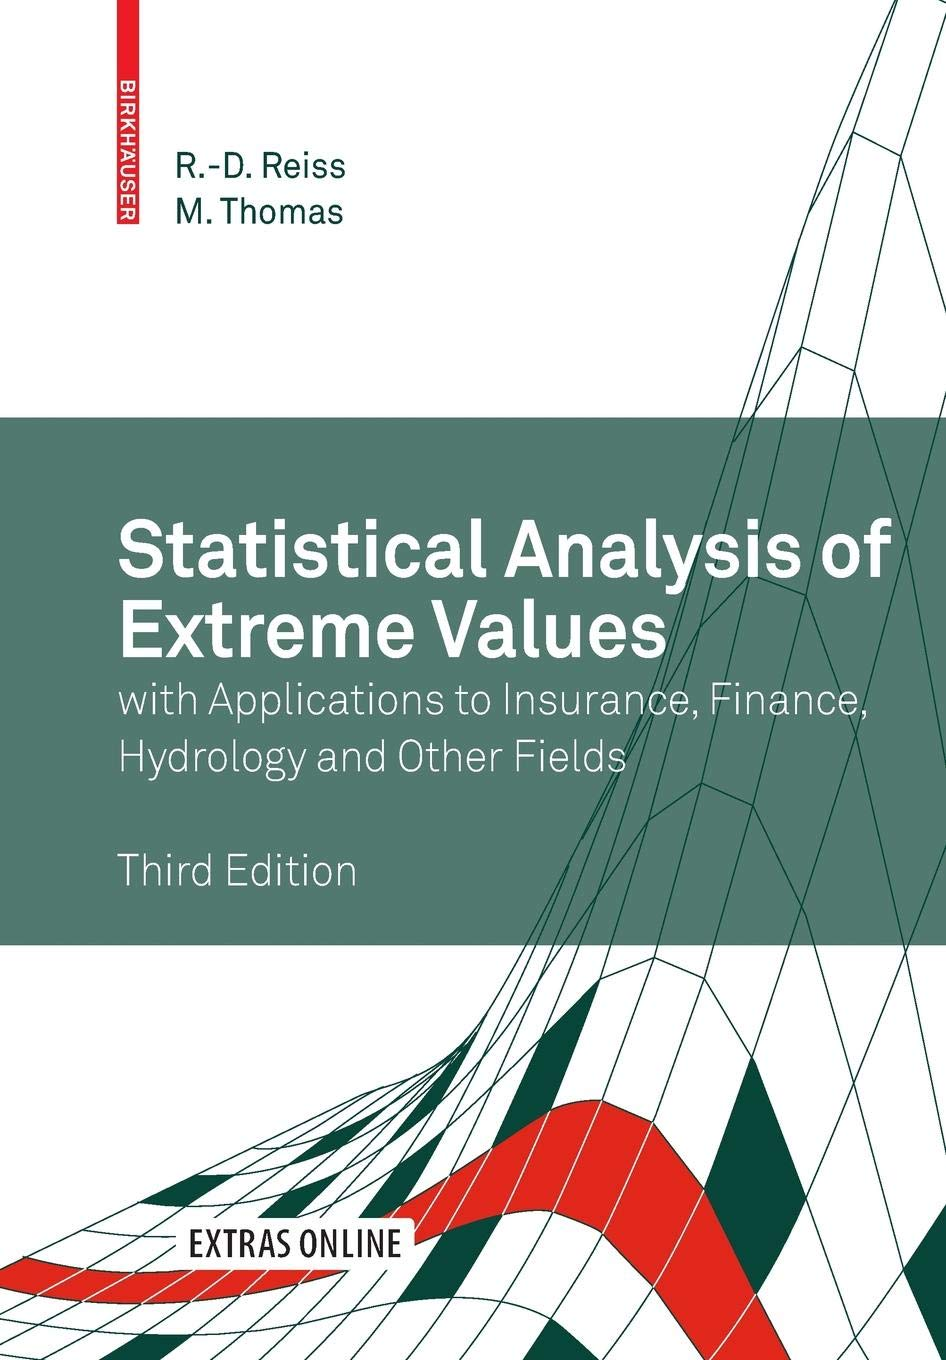 Statistical Analysis of Extreme Values: with Applications to